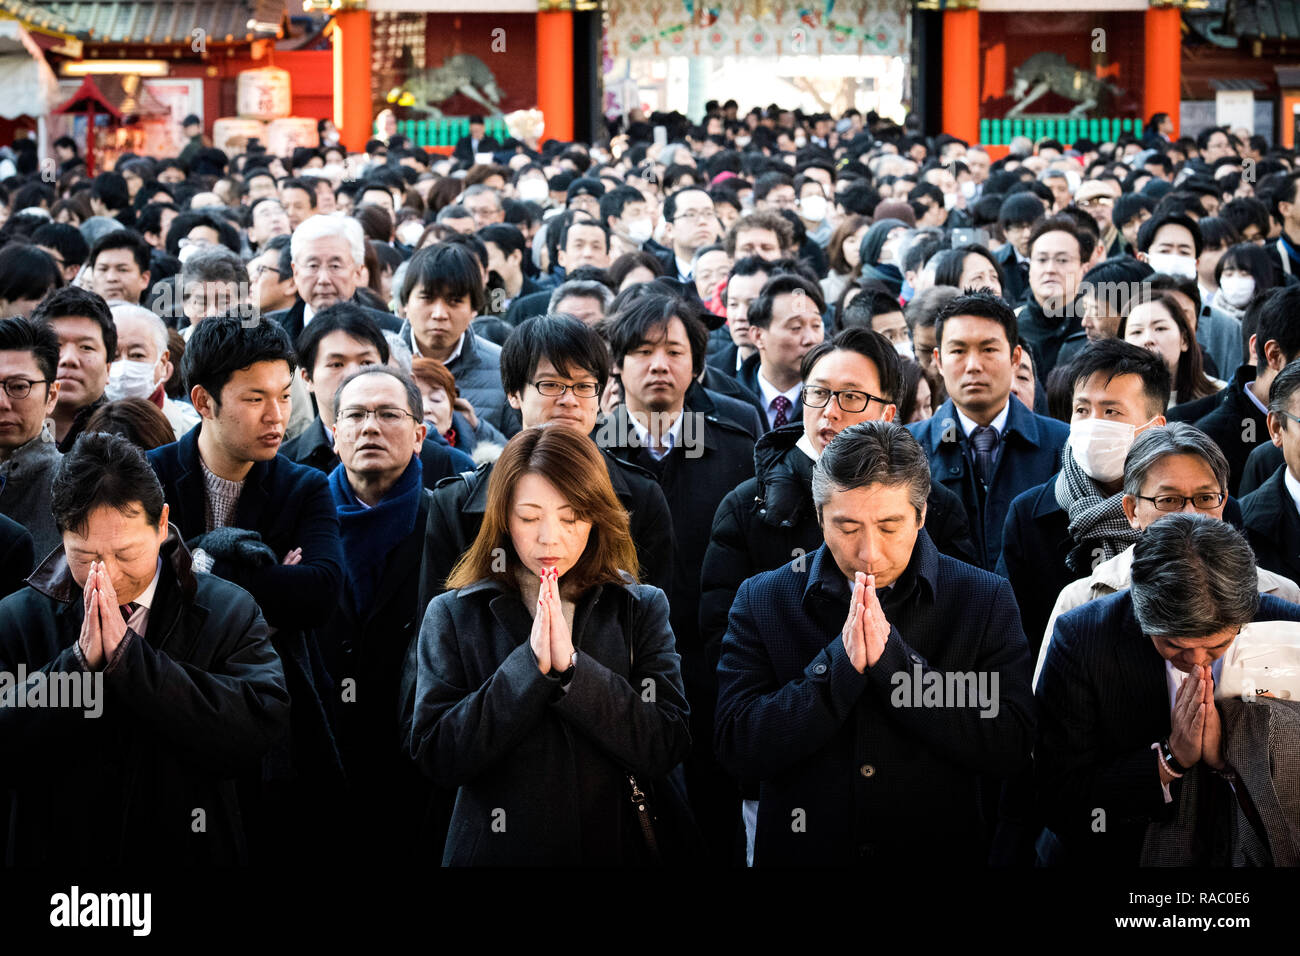 Tokyo, Japan. 4th Jan, 2019. TOKYO, JAPAN - JANUARY 4: People offer prayers on the first business day of the year at the Kanda Myojin shrine, which is known to be frequented by worshippers seeking good luck and prosperous business, in Tokyo, Japan, January 4, 2019. (Photo: Richard Atrero de Guzman/Aflo Photo) Credit: Aflo Co. Ltd./Alamy Live News - Stock Image